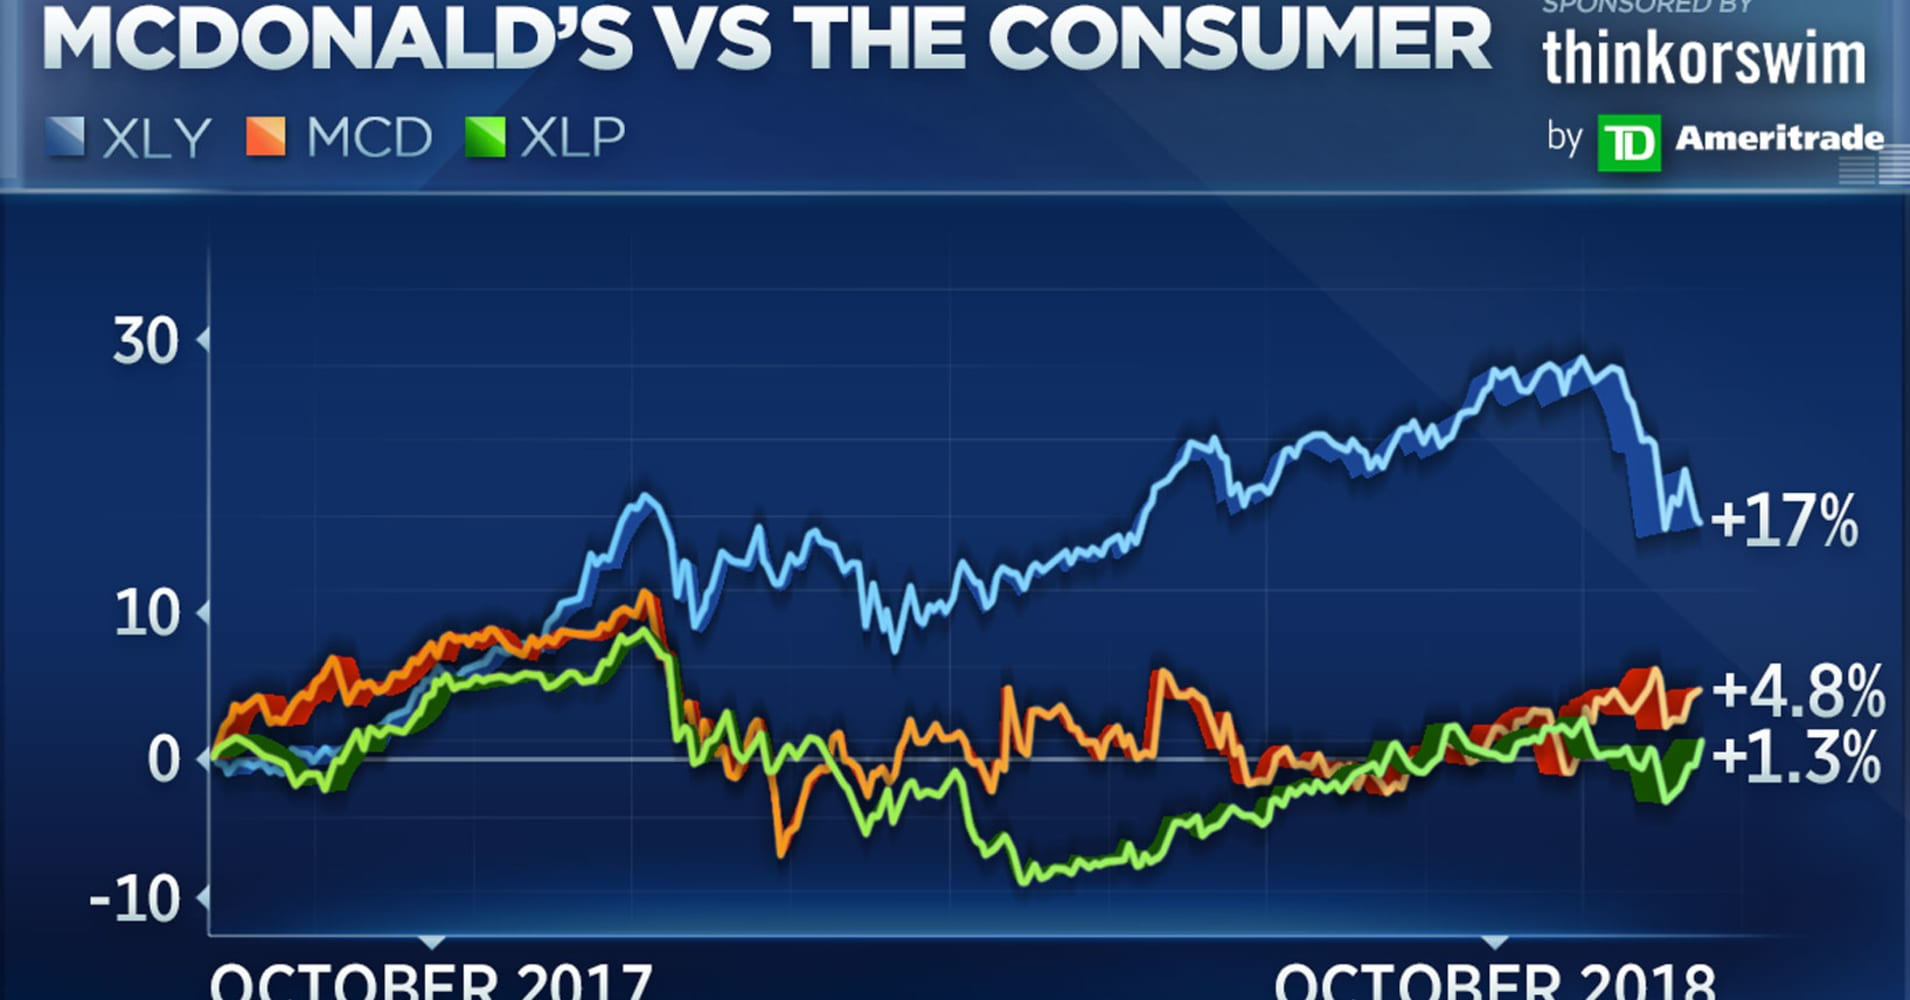 Mcdonalds Is About To Break Out To New Highs Says Top Technician